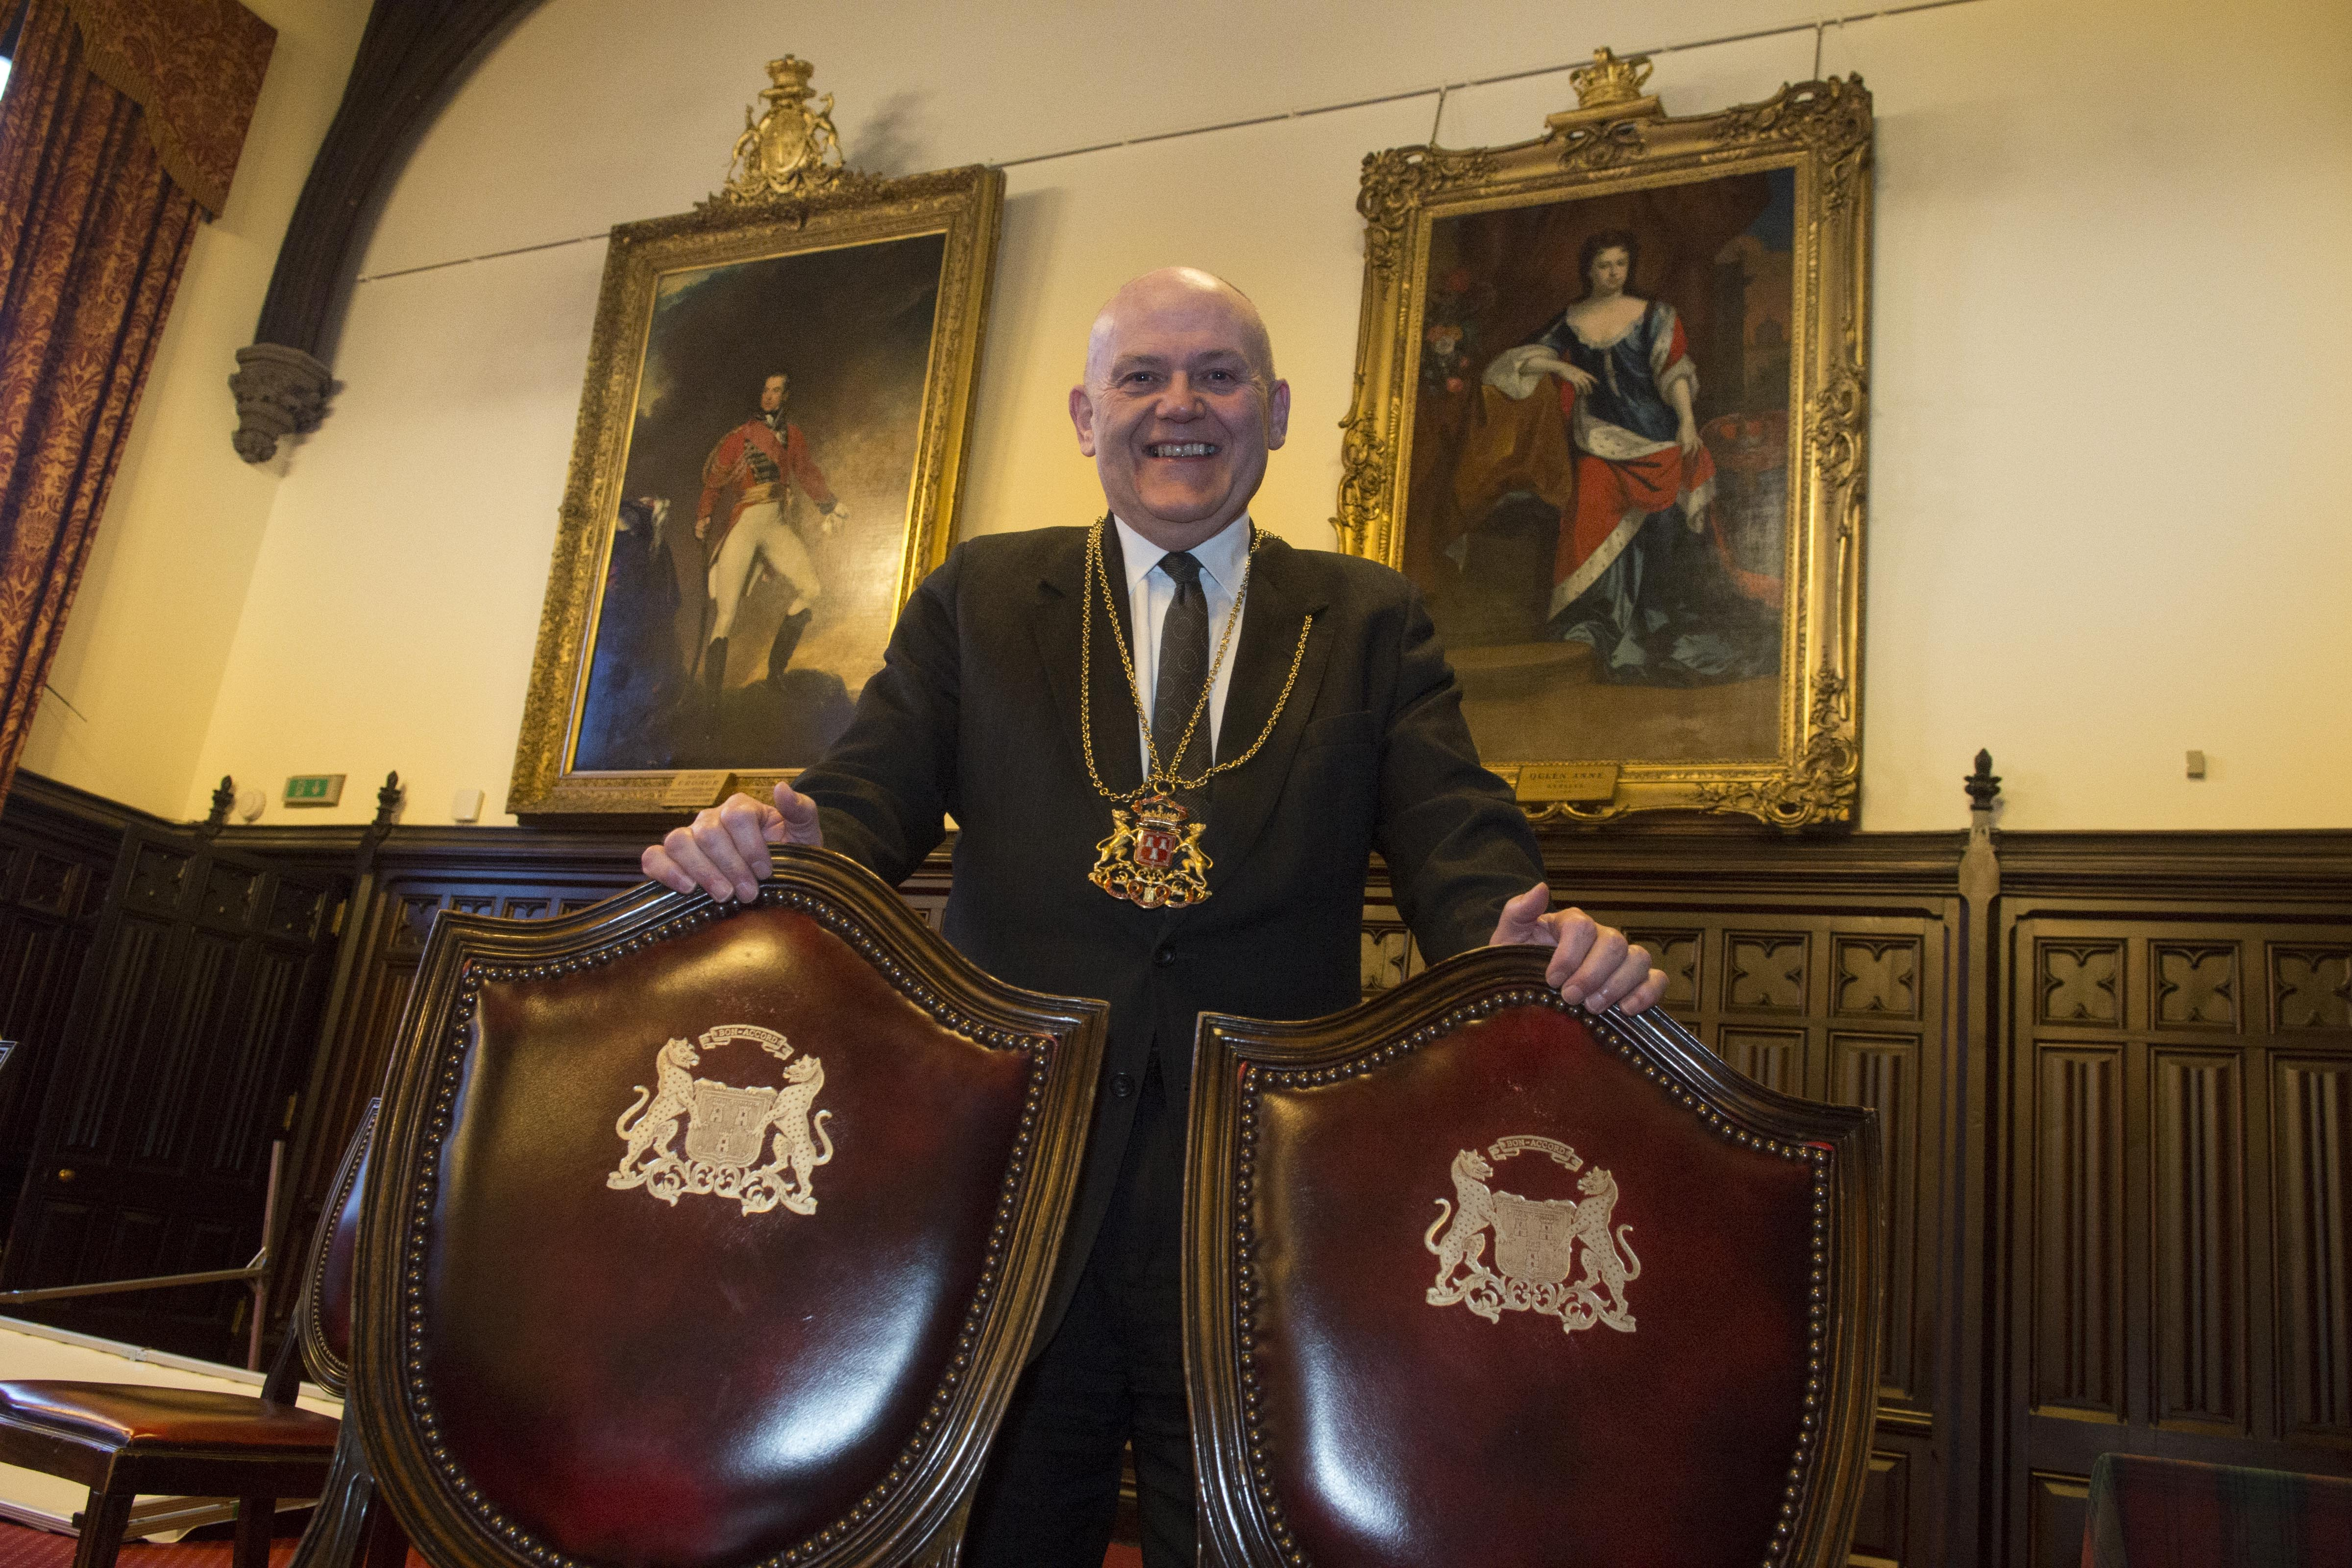 22/01/19 The Lord provost Barney Crockett next to the portrait of Queen Anne trhat hangs in the Aberdeeen Town House who is the subject of a new film in cinemas, The Favourite